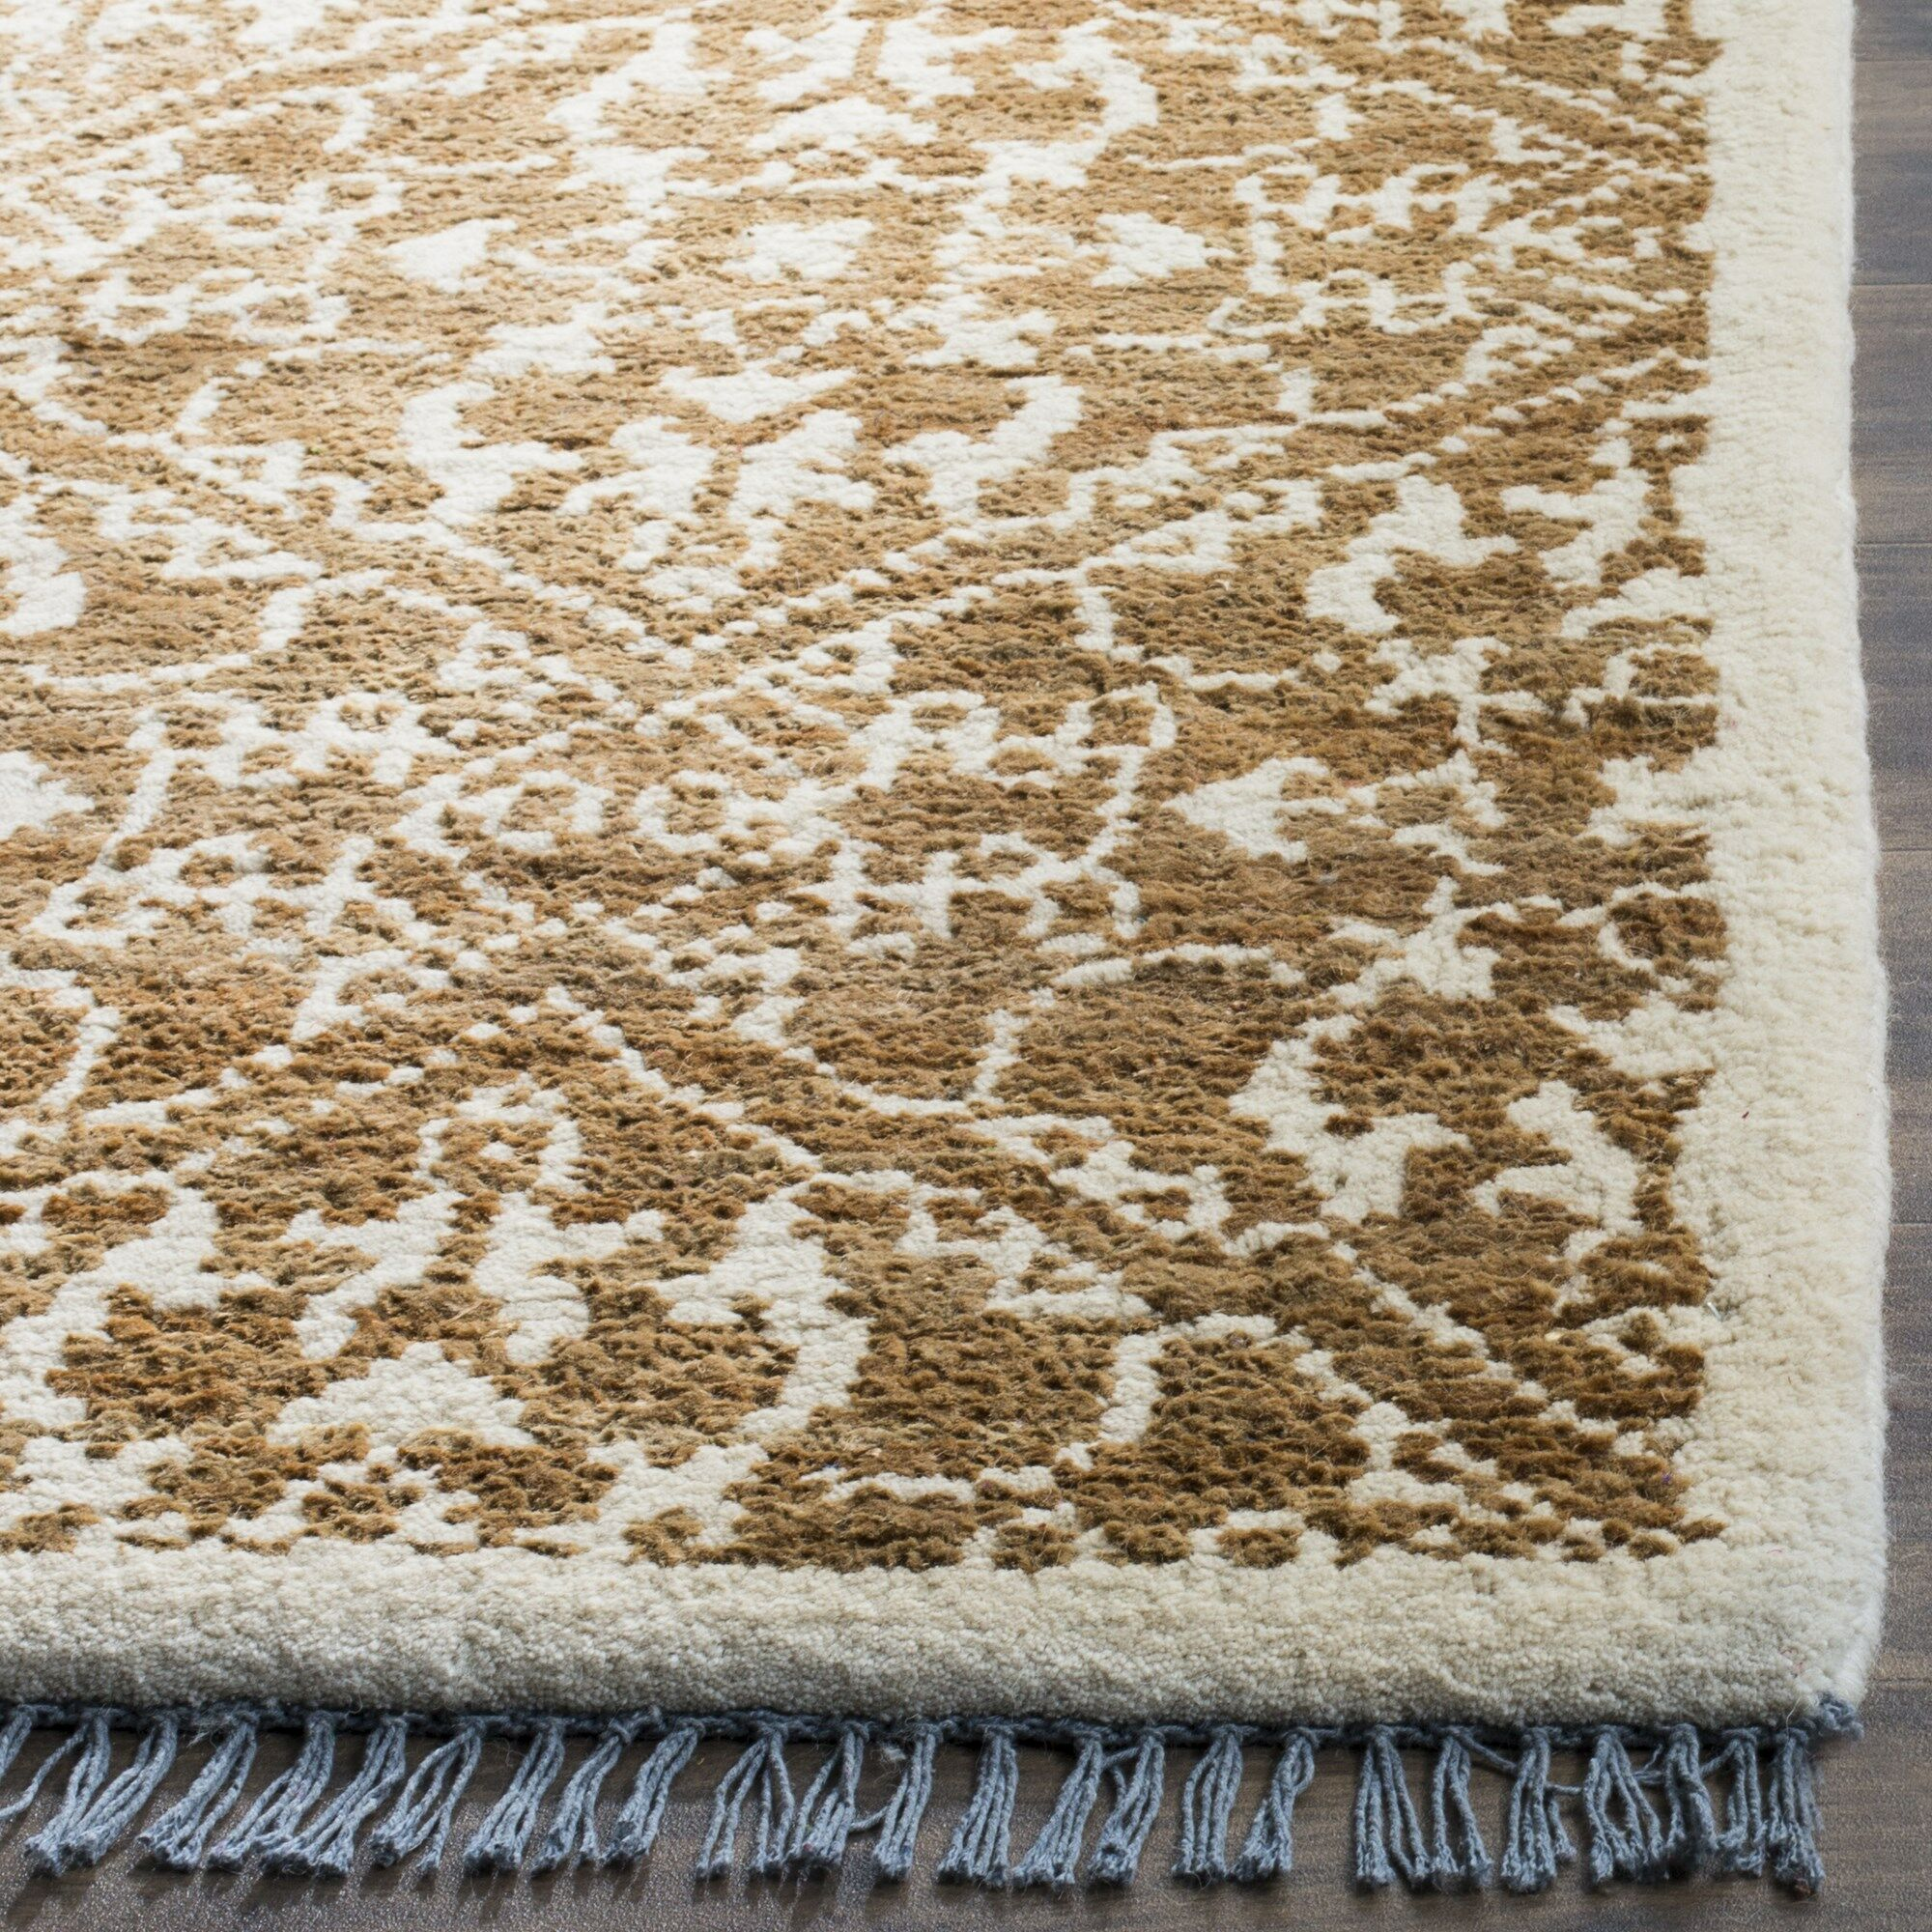 Elford Hand-Woven Brown Area Rug Rug Size: Rectangle 5' x 8'